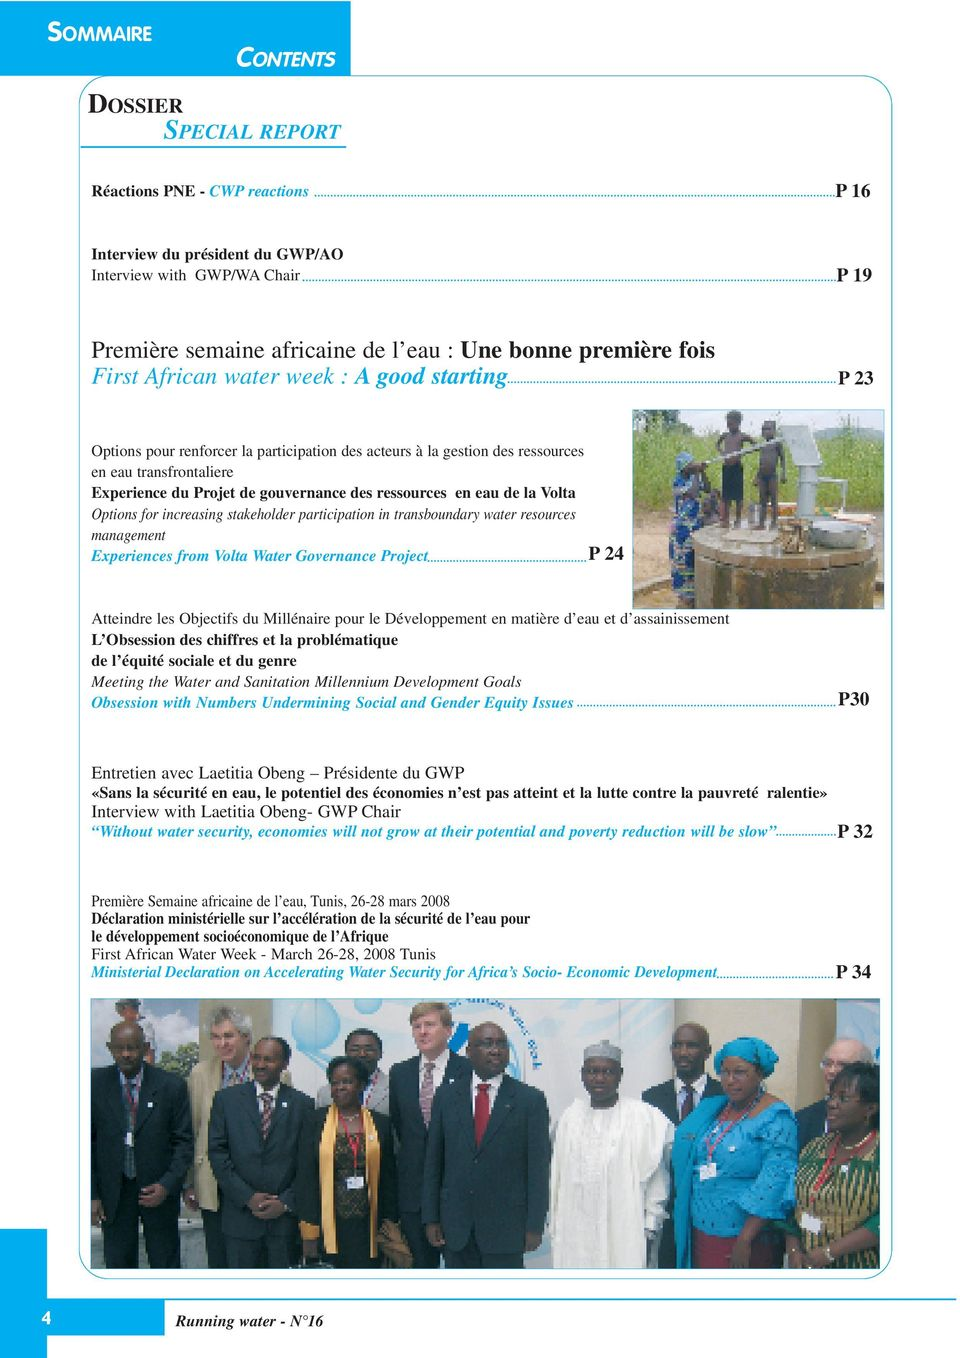 eau de la Volta Options for increasing stakeholder participation in transboundary water resources management Experiences from Volta Water Governance Project P24 Atteindre les Objectifs du Millénaire